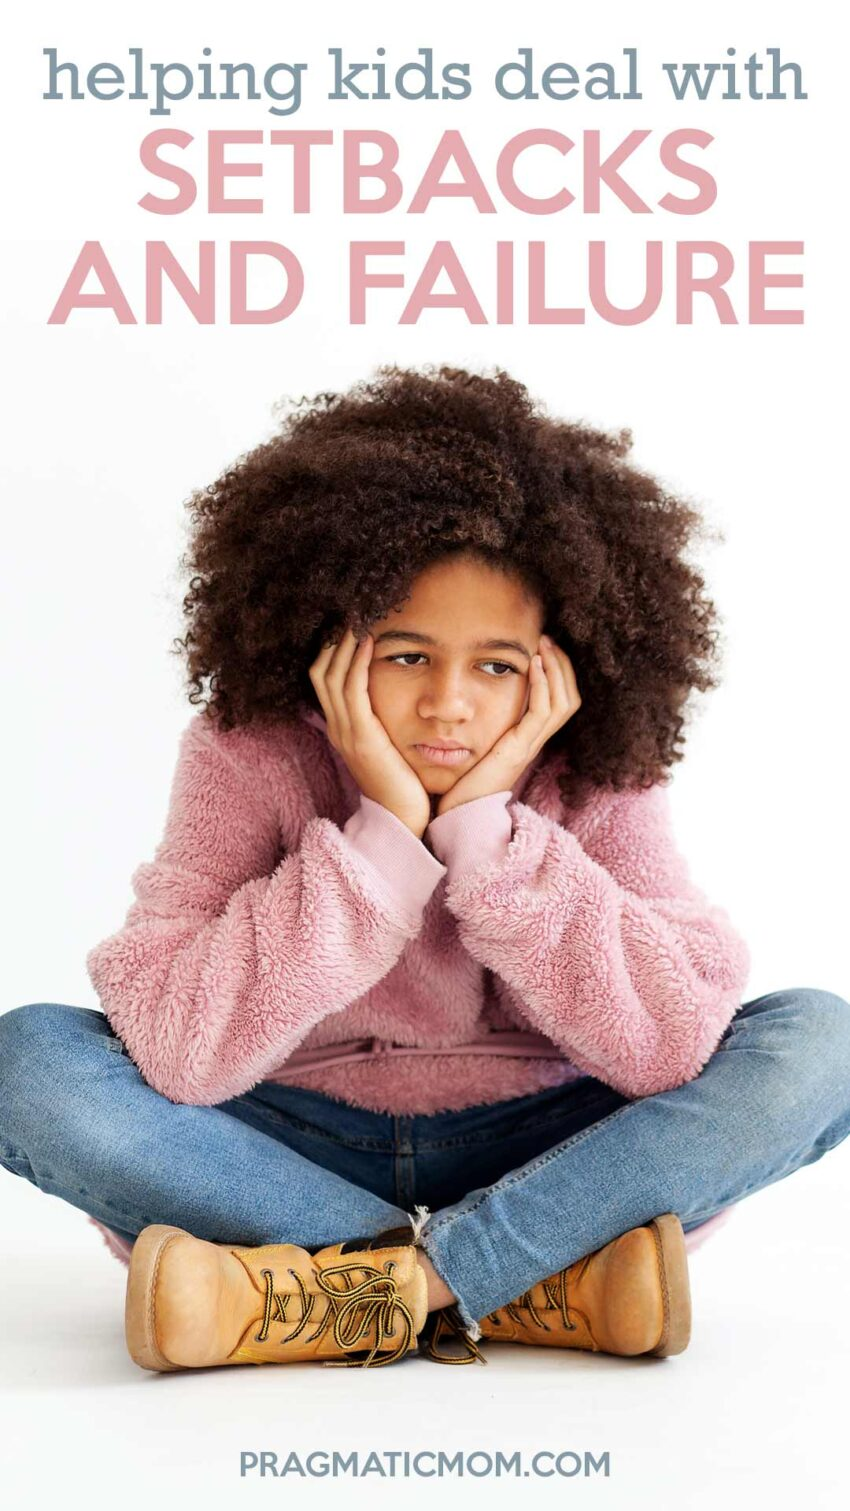 Helping Kids Deal with Setbacks and Failure